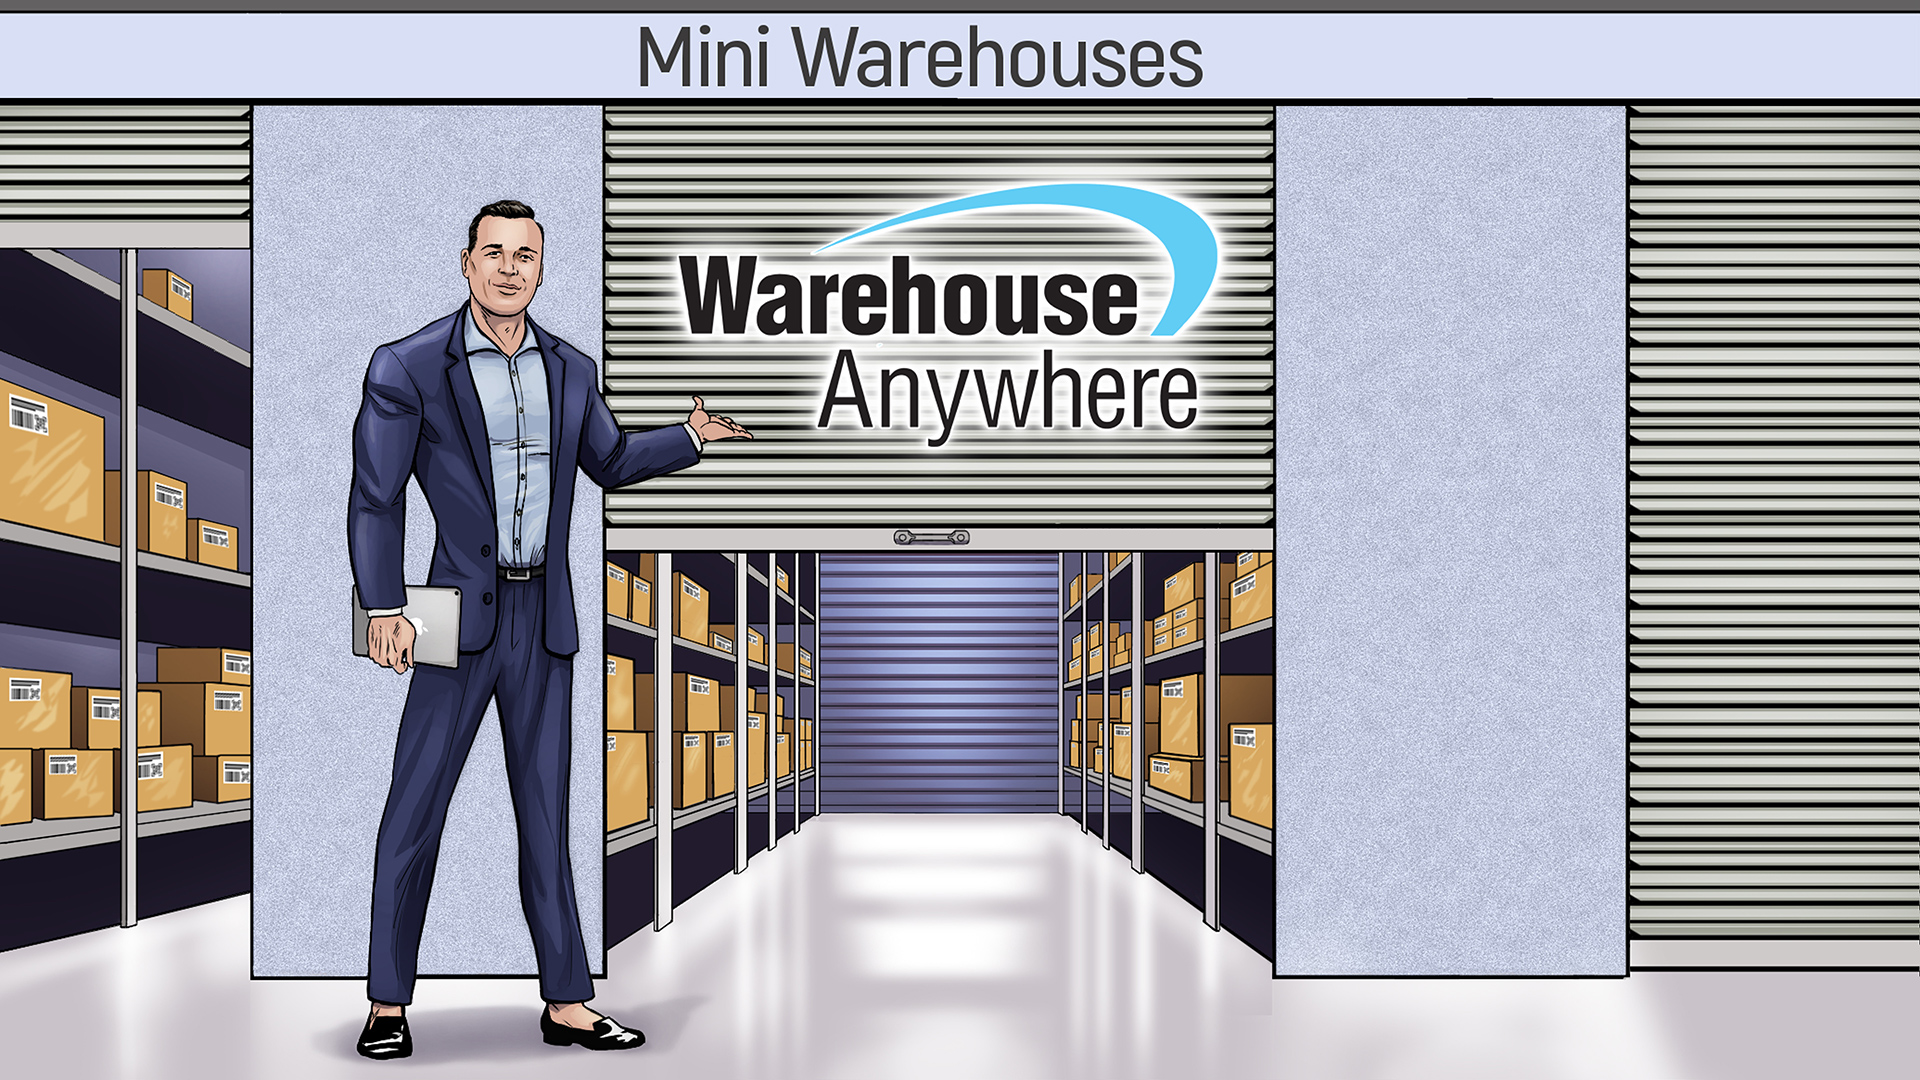 Mini Warehouse Solutions - Warehouse Anywhere